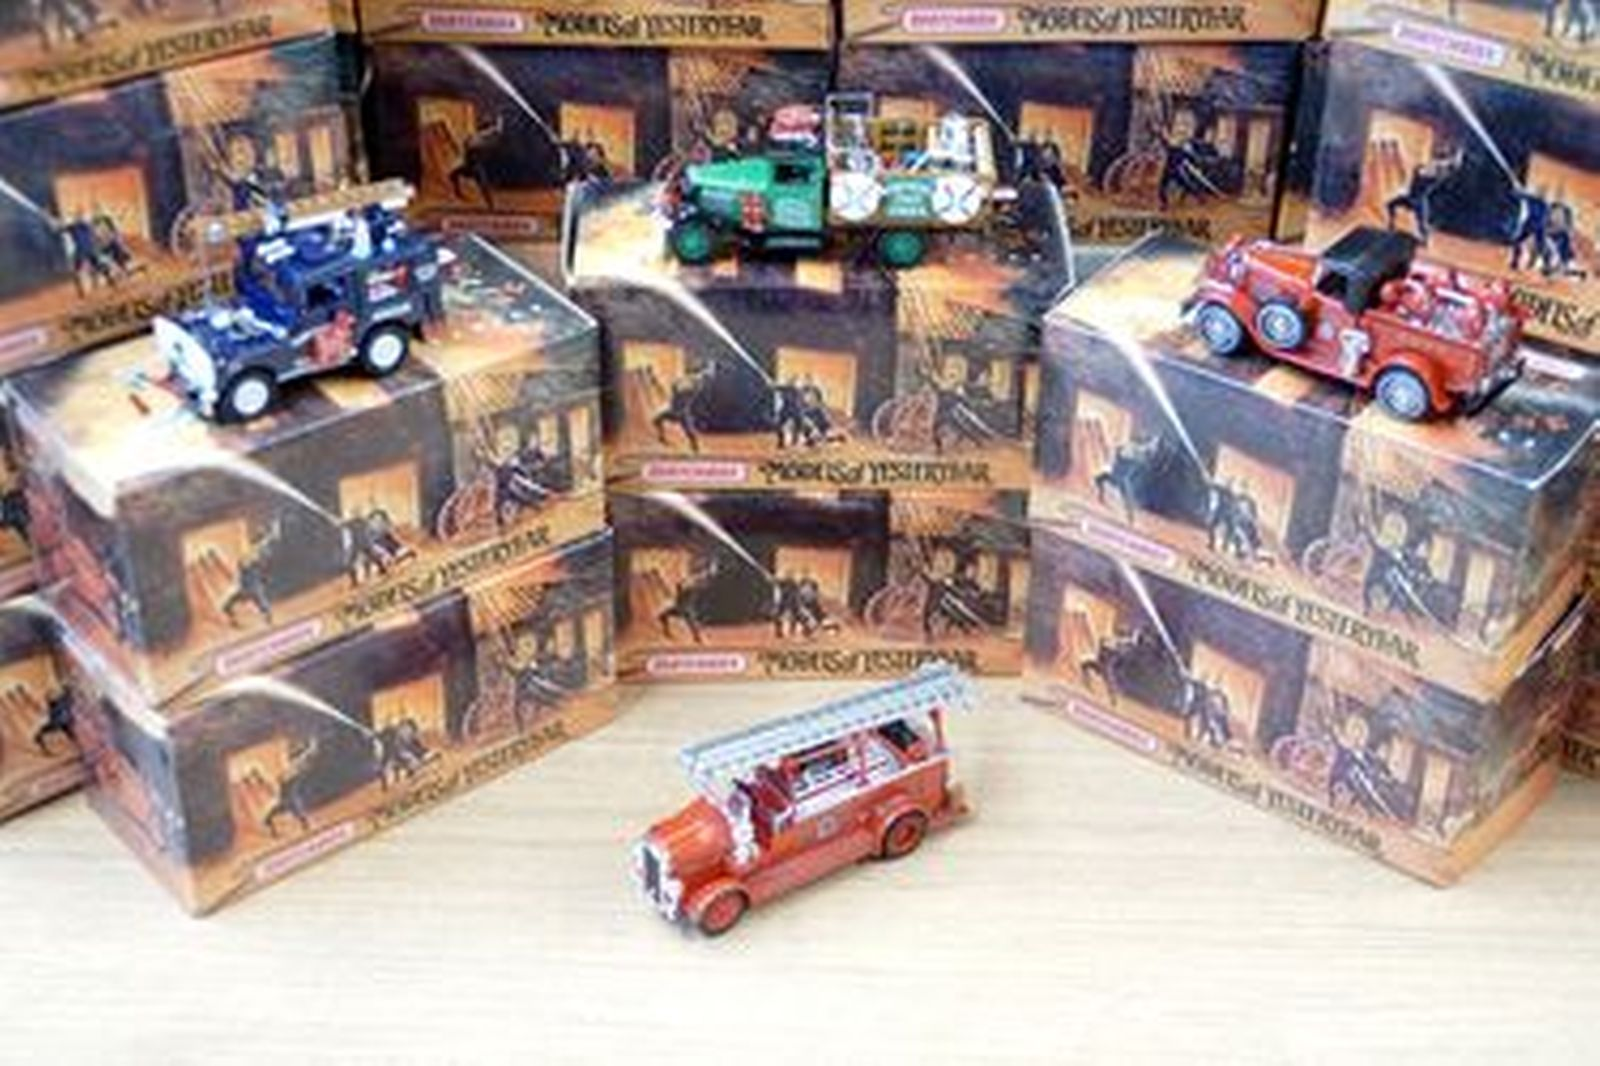 36 x  Model Cars - Matchbox Models of Yesteryear Fire Trucks (approx 1:32 scale)